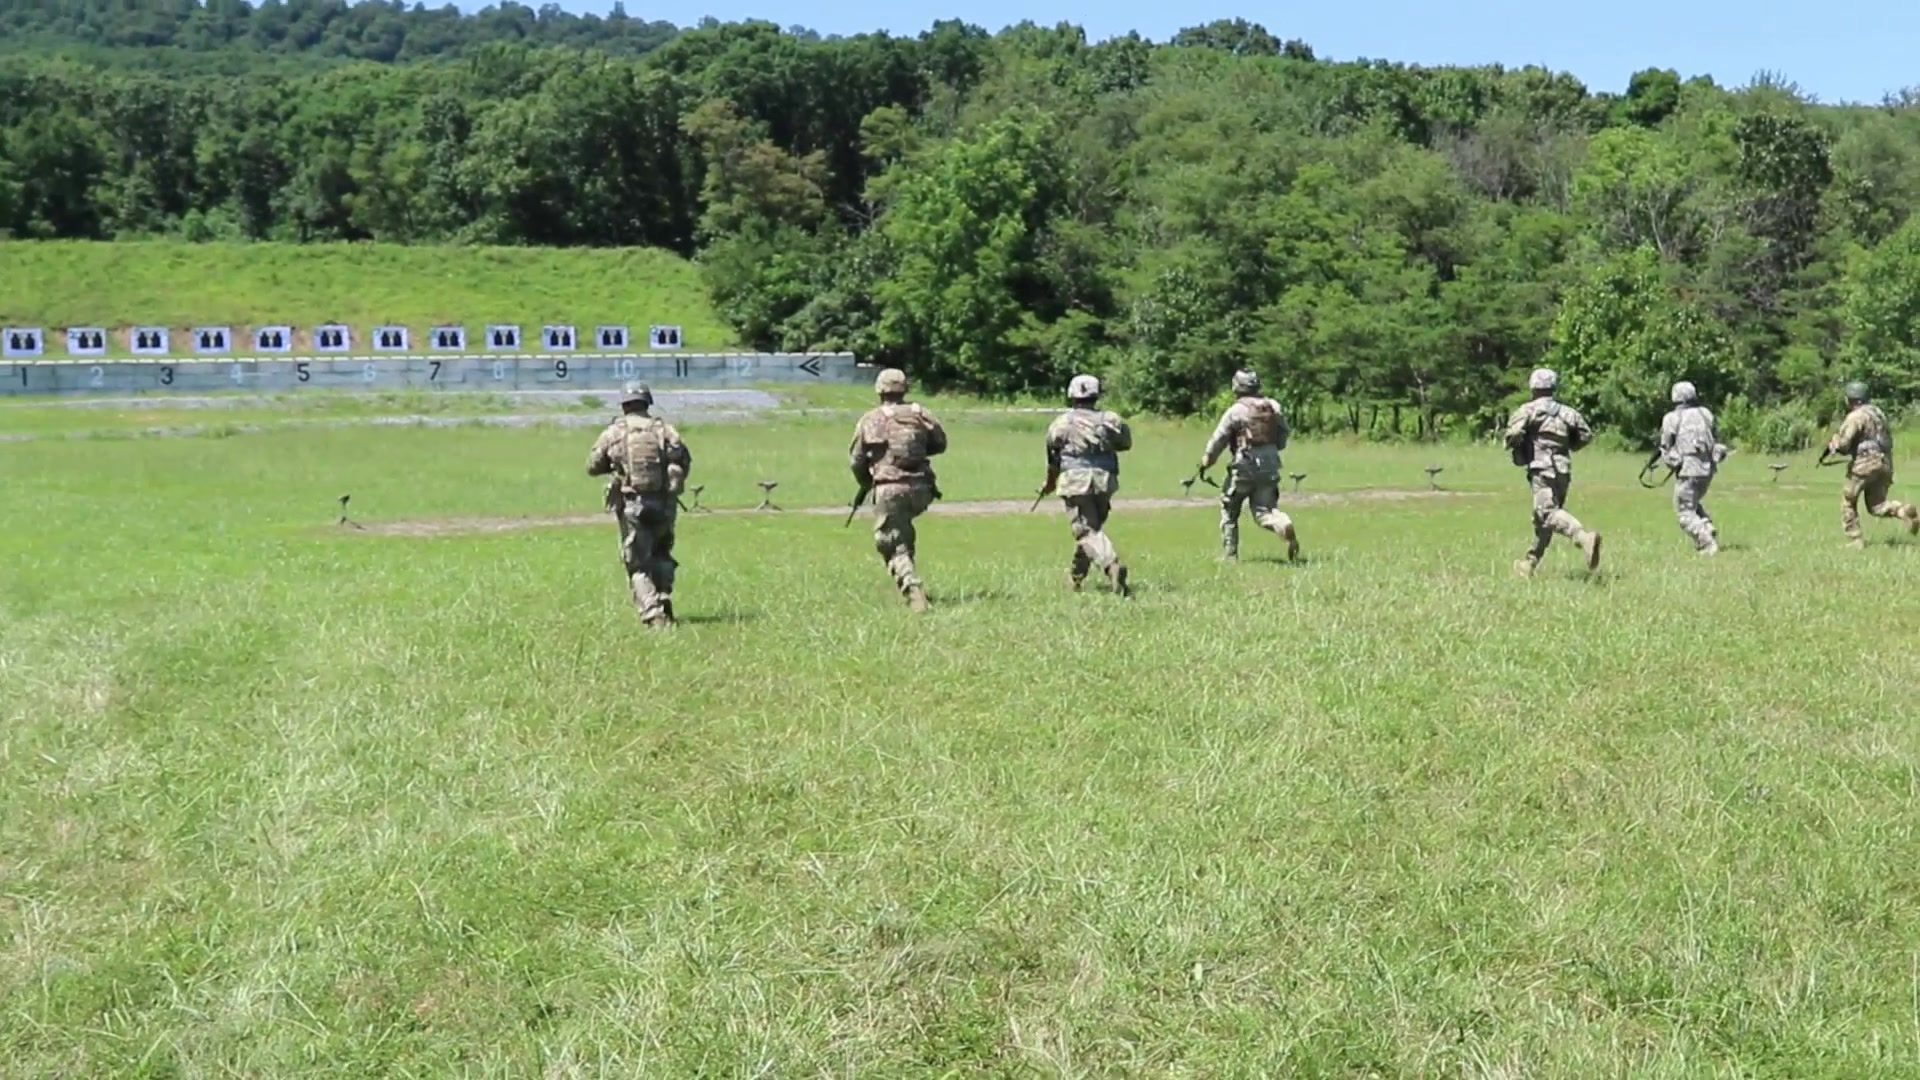 Seventy Pennsylvania National Guard (PNG) Soldiers and Airmen competed with rifles and pistols in multiple courses of fire to determine the best marksmen during the Governor's Twenty match at Fort Indiantown Gap on July 13, 2019.